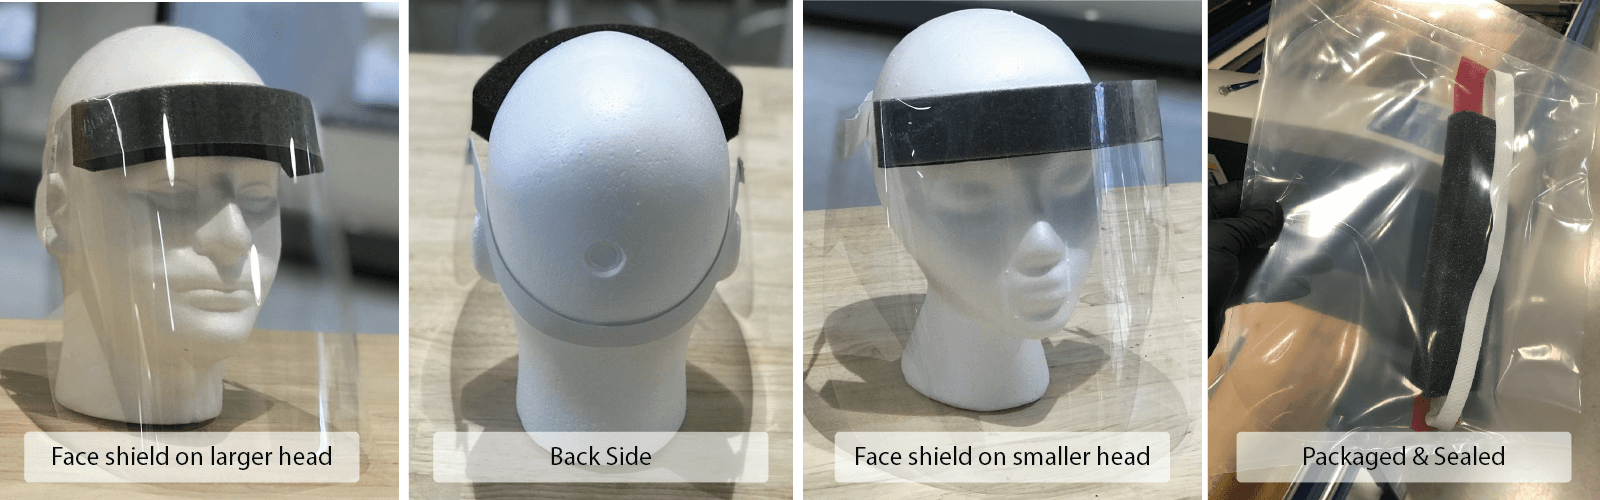 Views showing the fit of the Covid-19 medical face shield on different sized heads